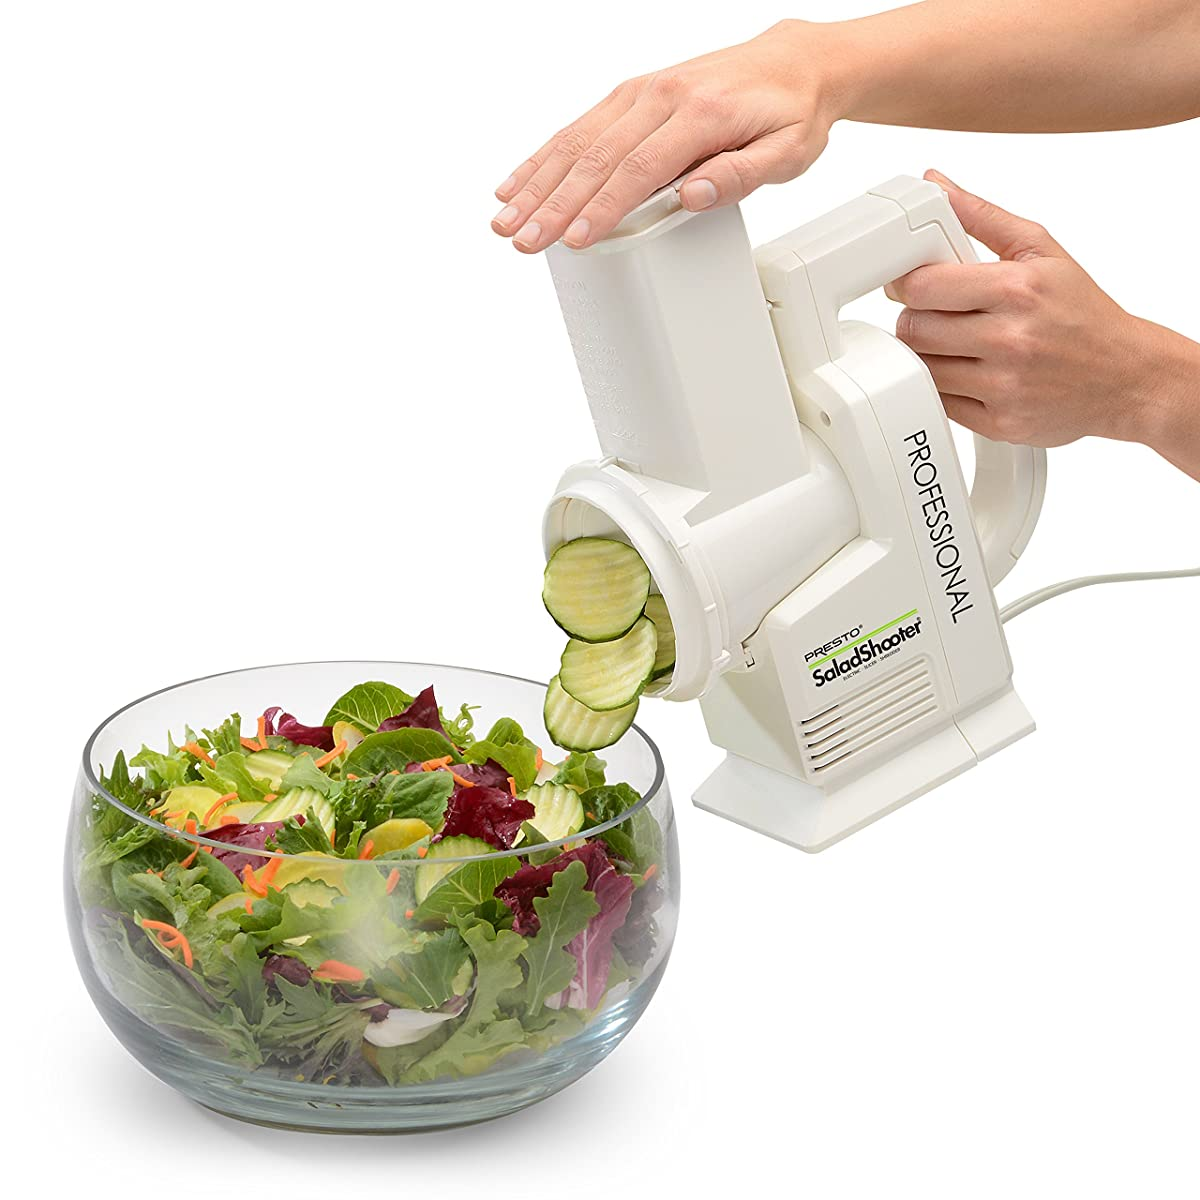 Presto 02970 Professional SaladShooter Electric Slicer/Shredder, White